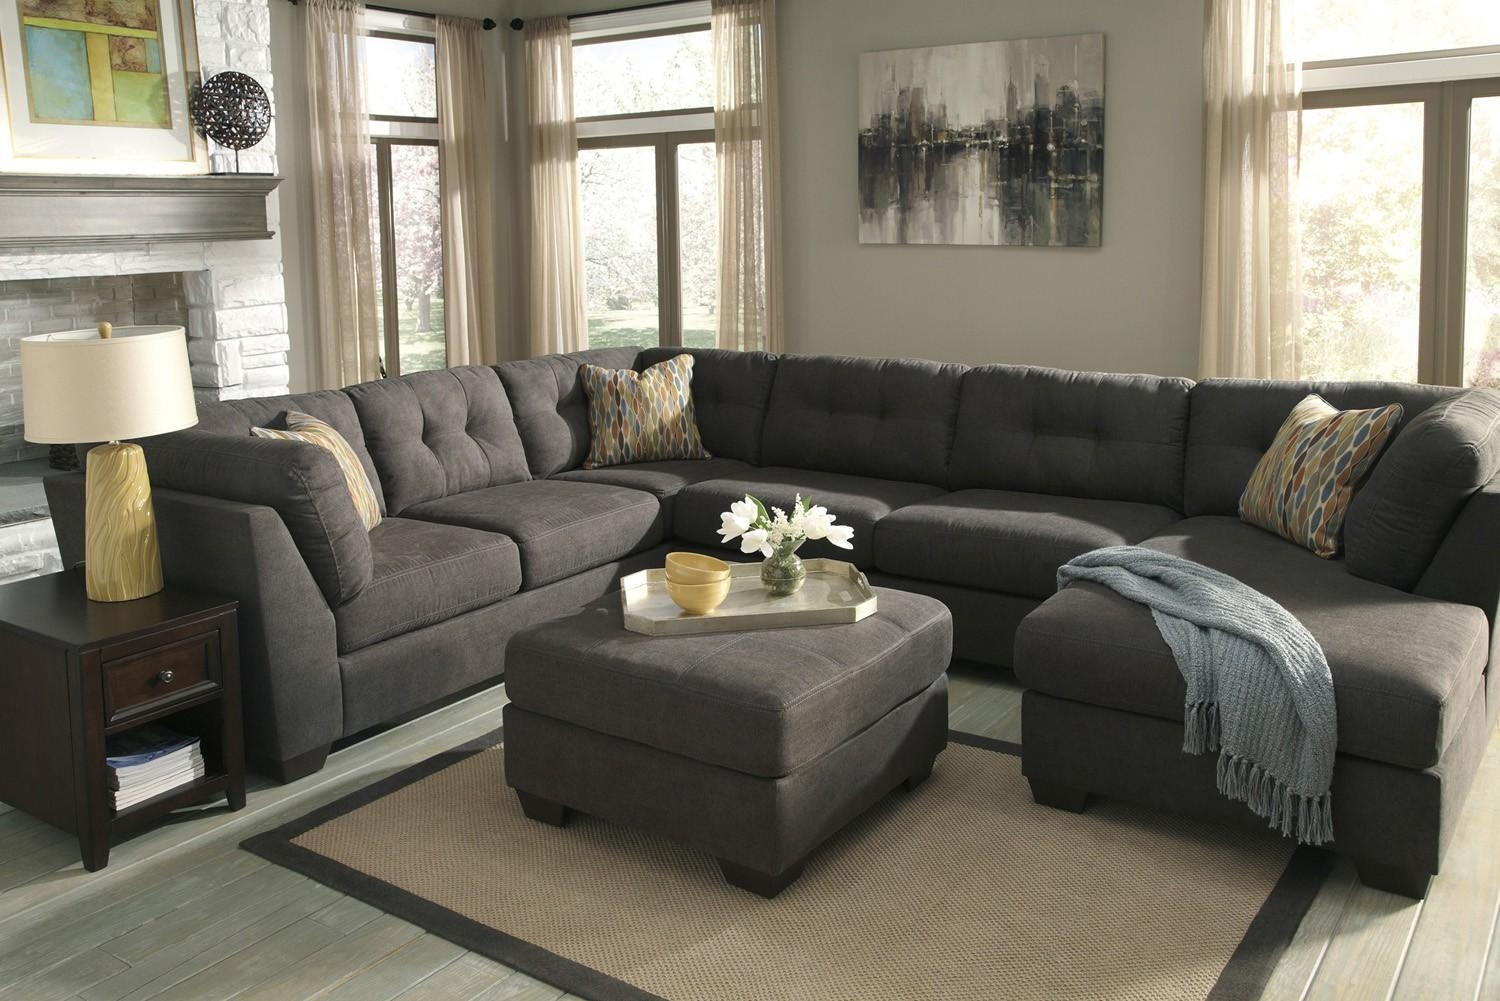 Delta City Steel 3 Piece Sectional Sofa With Left Arm Facing Pertaining To 3 Piece Sectional Sleeper Sofa (View 6 of 15)